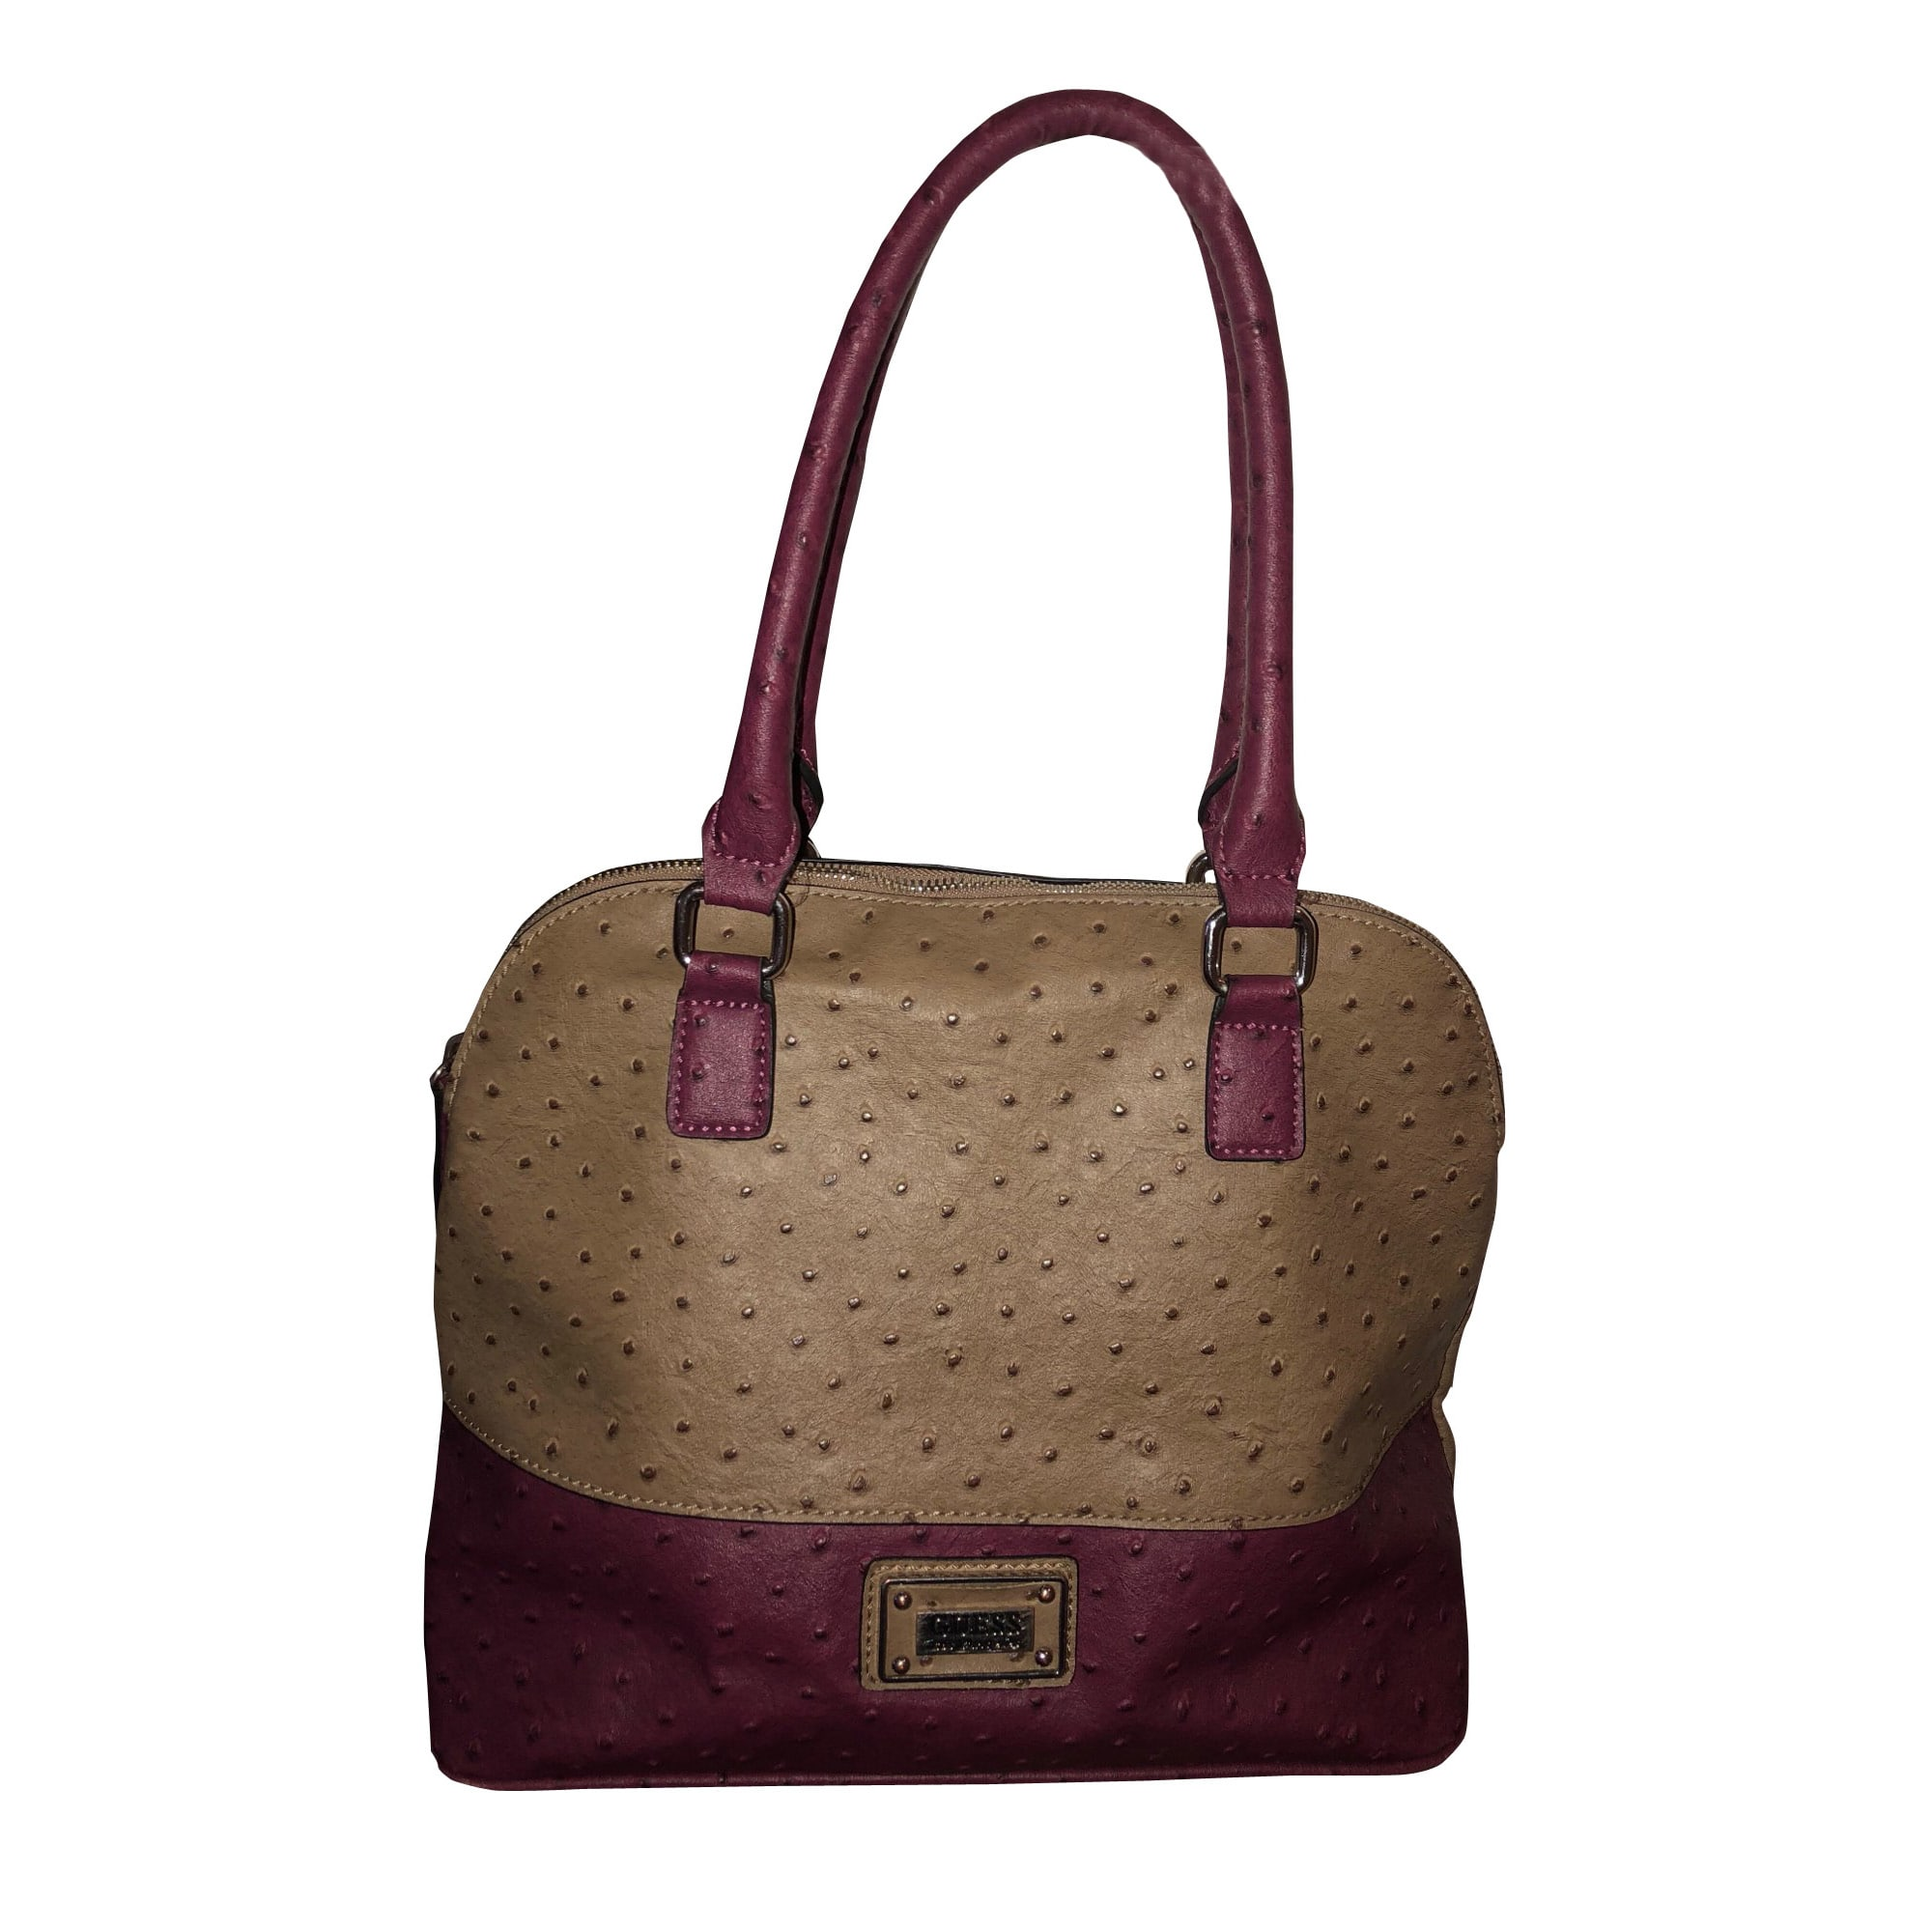 Leather Handbag GUESS Beige, camel